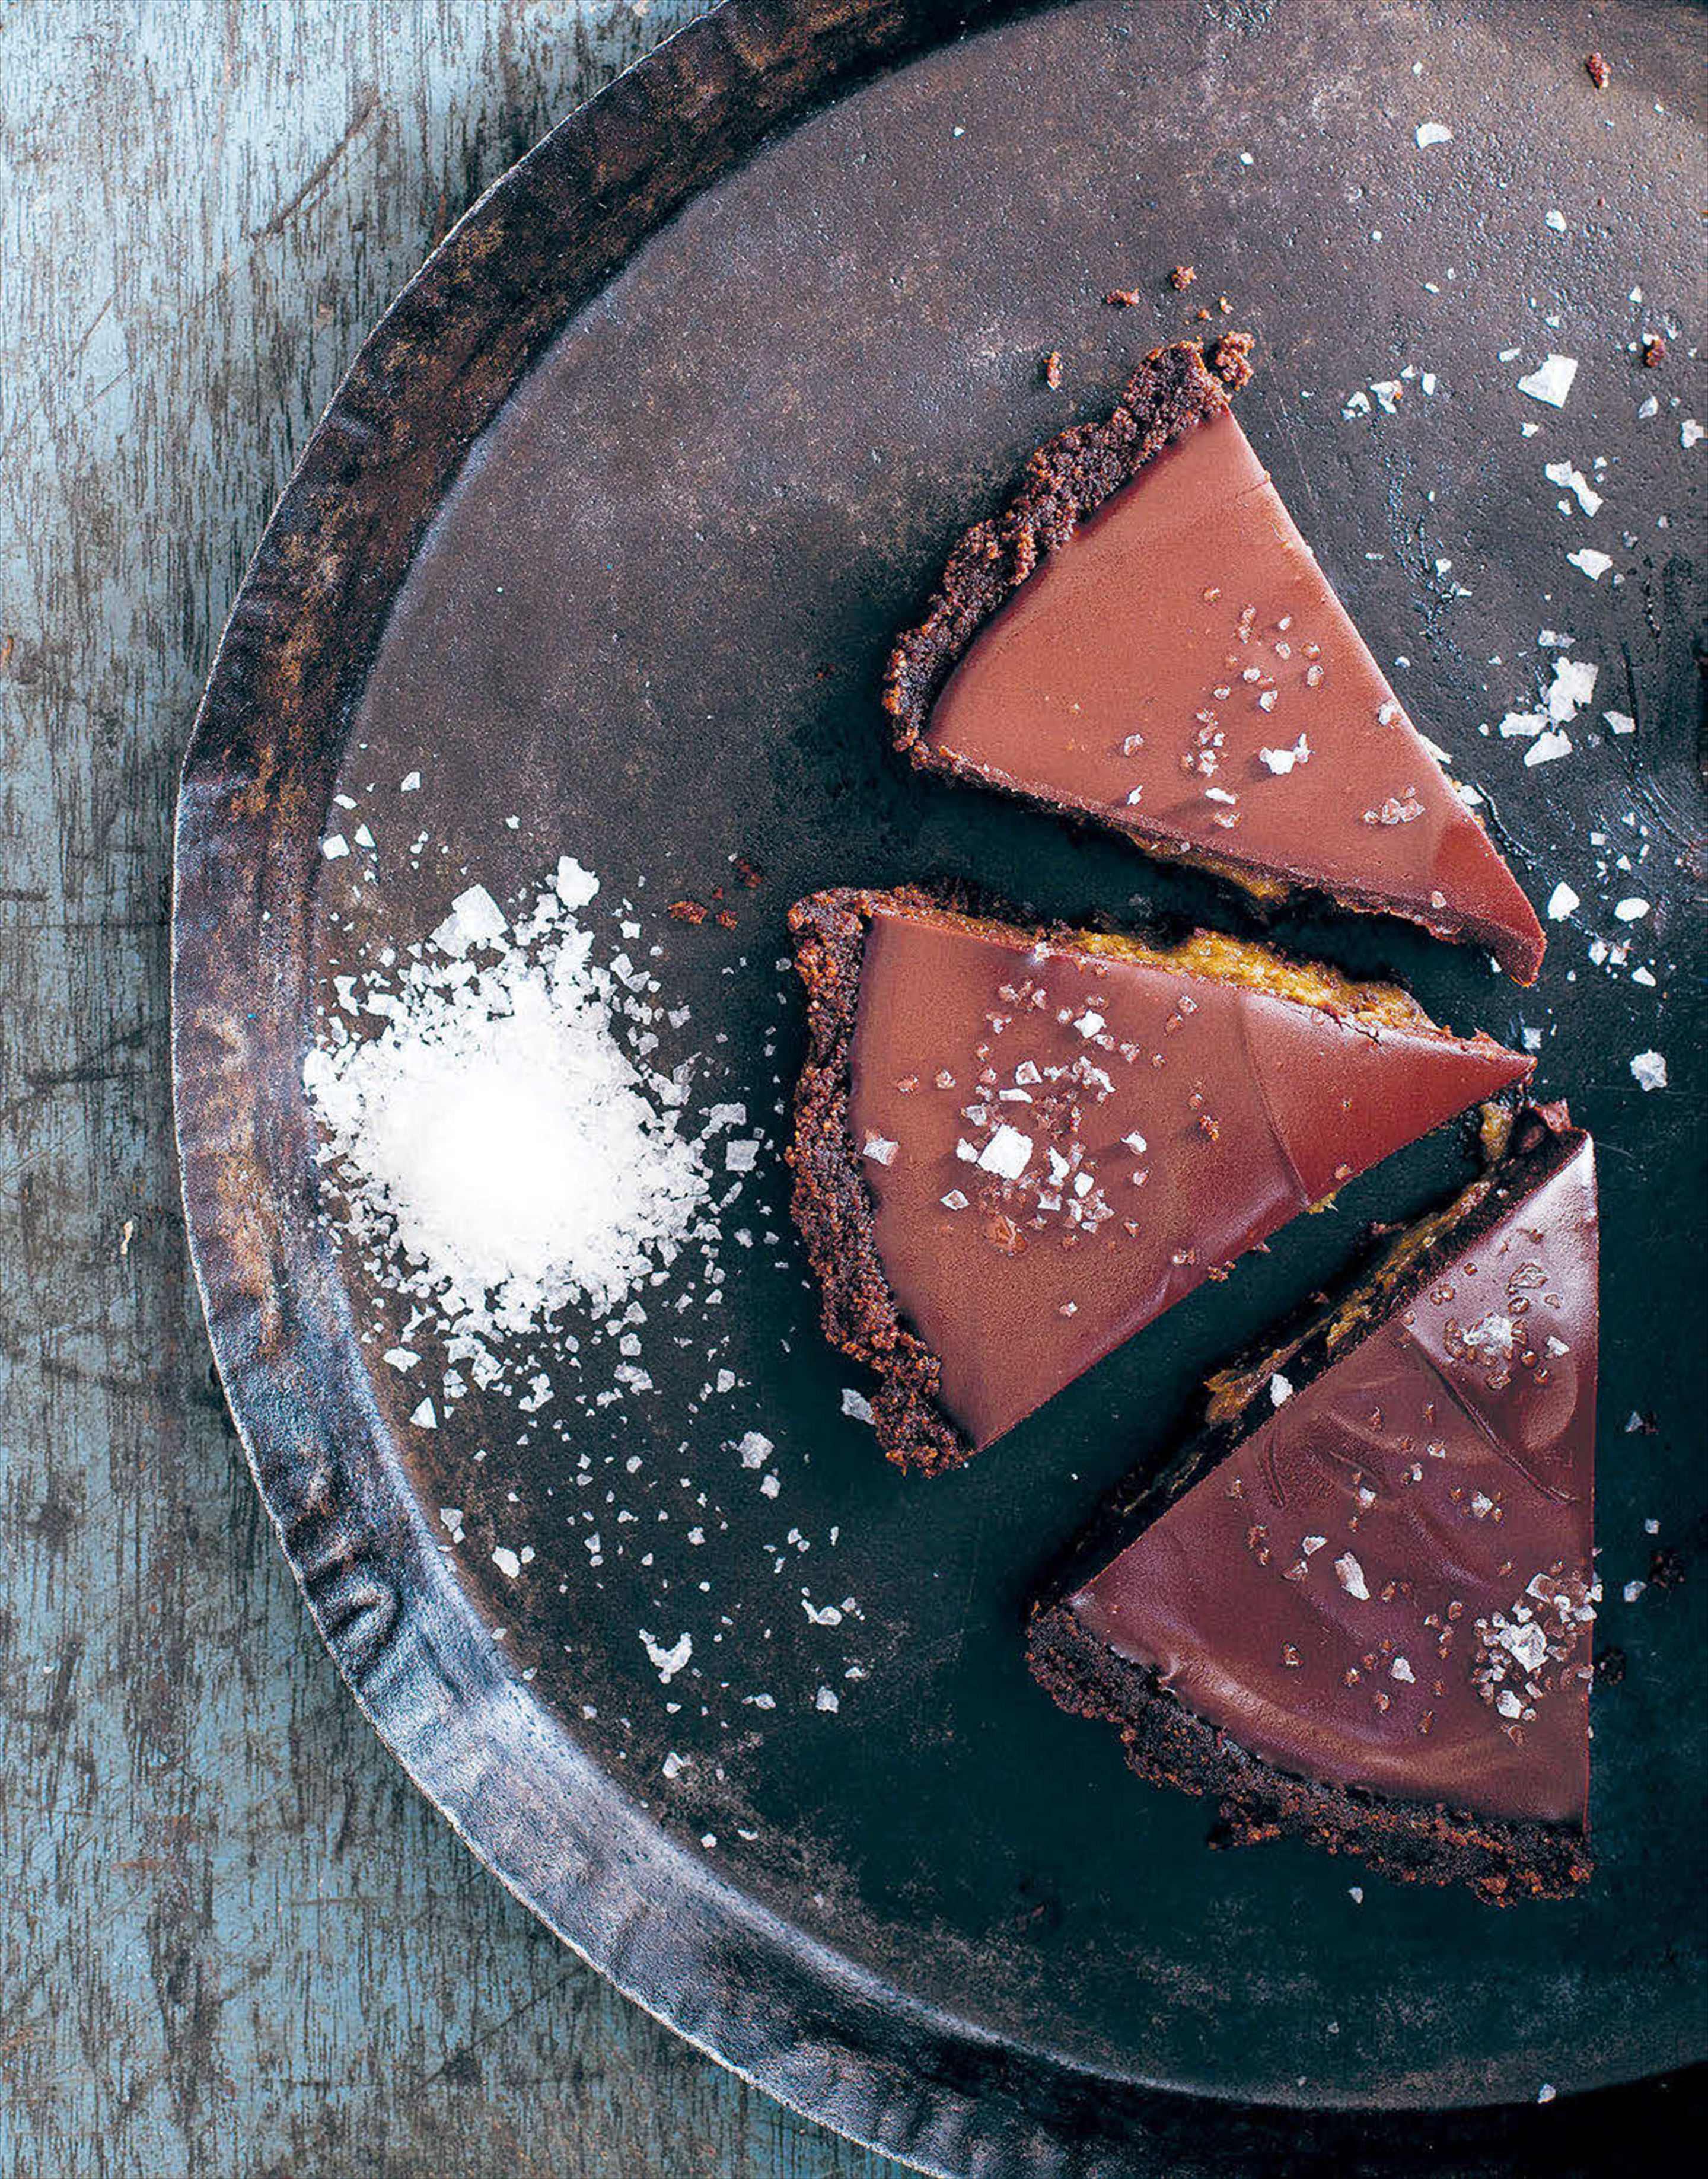 Salted chocolate and date pie